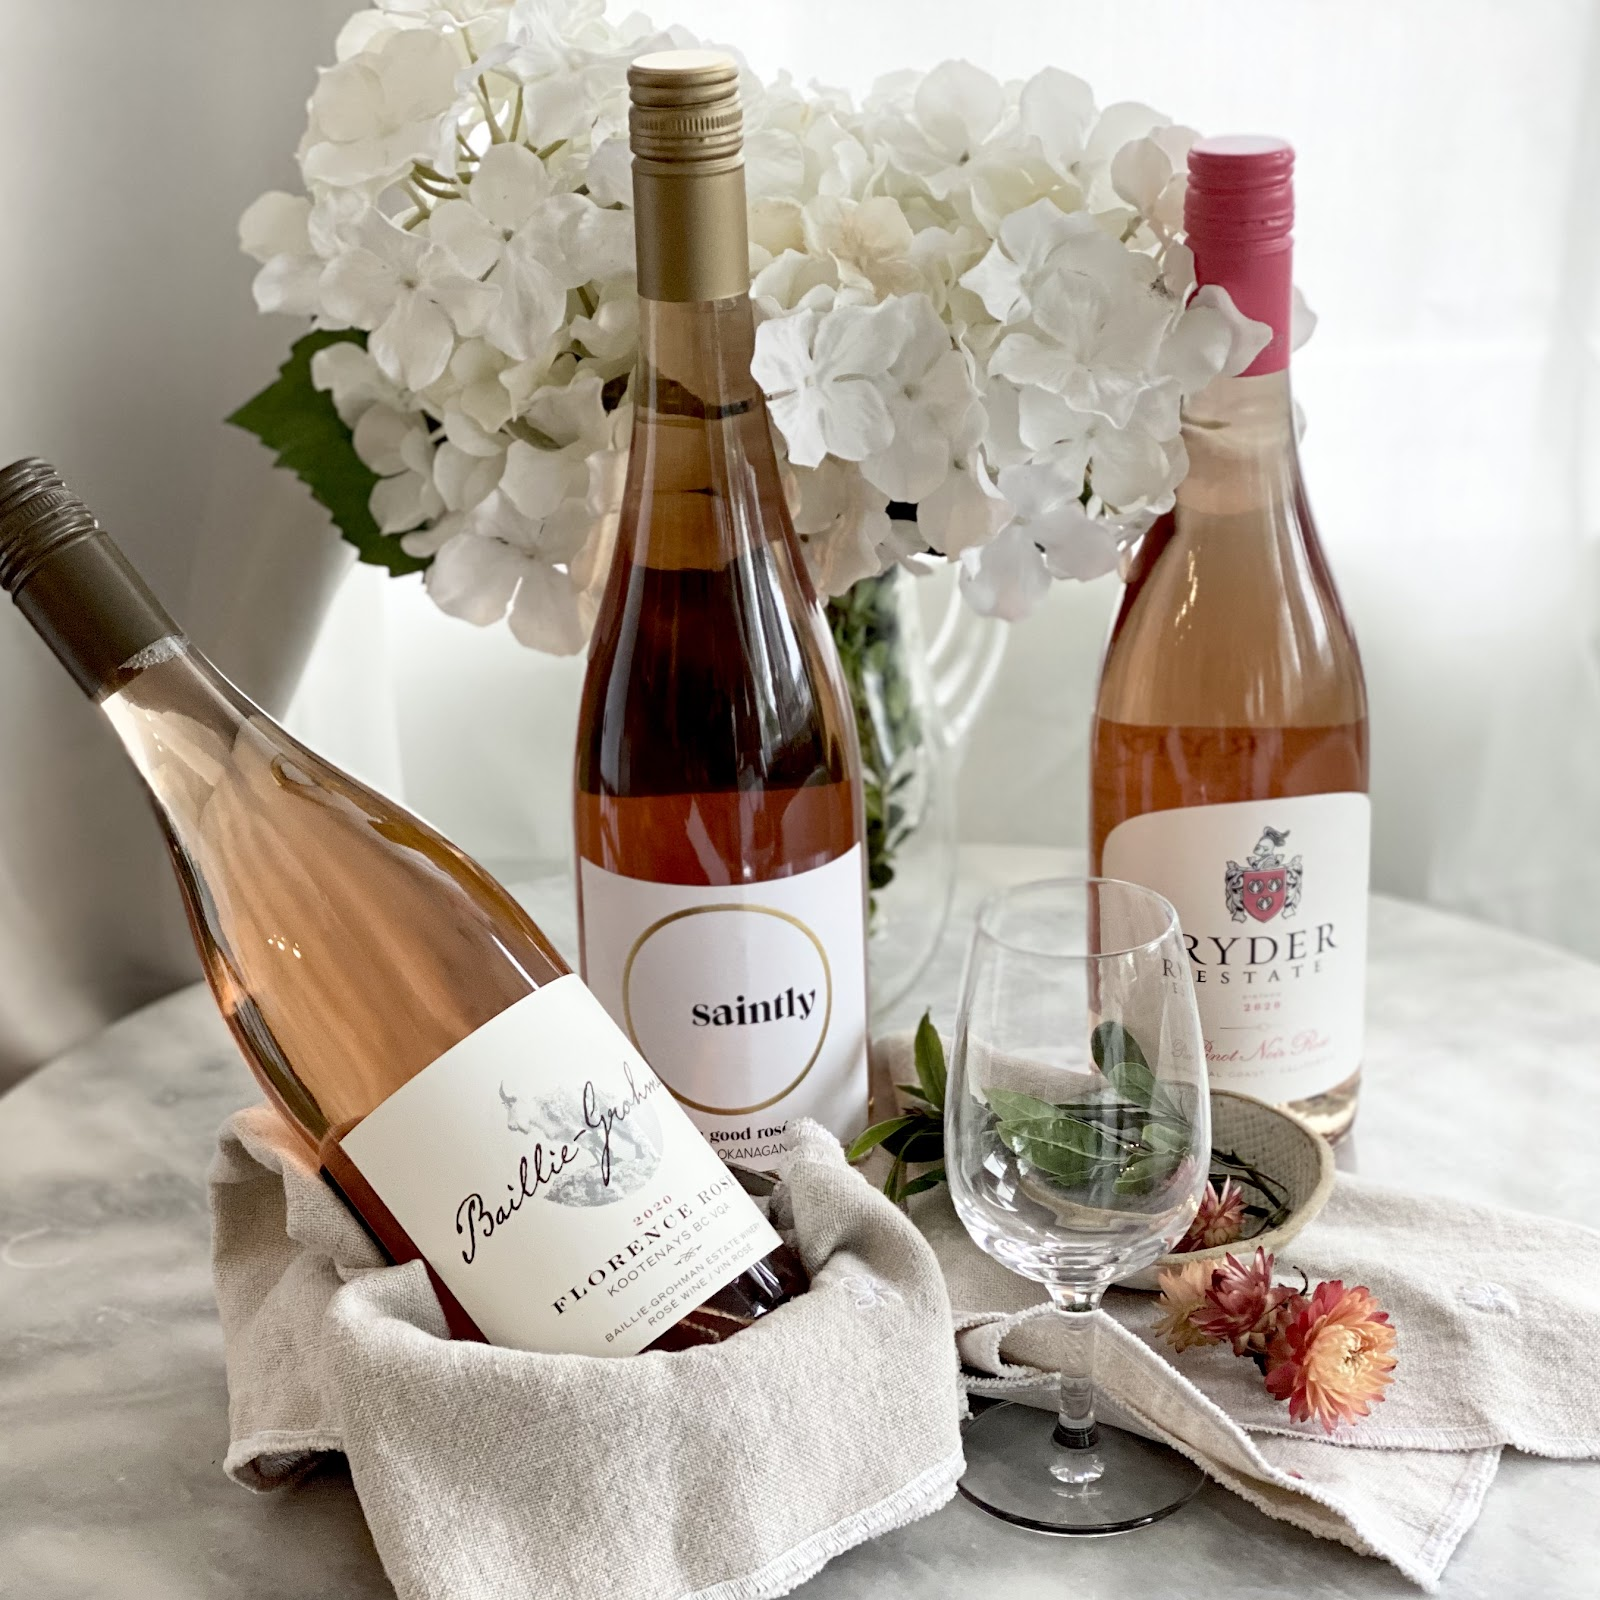 Rose All May Rose wine tasting with Barb Wild of Good Wine Gal and Alison Kent of the Home Kitchen beautiful pink bottles of rose wines